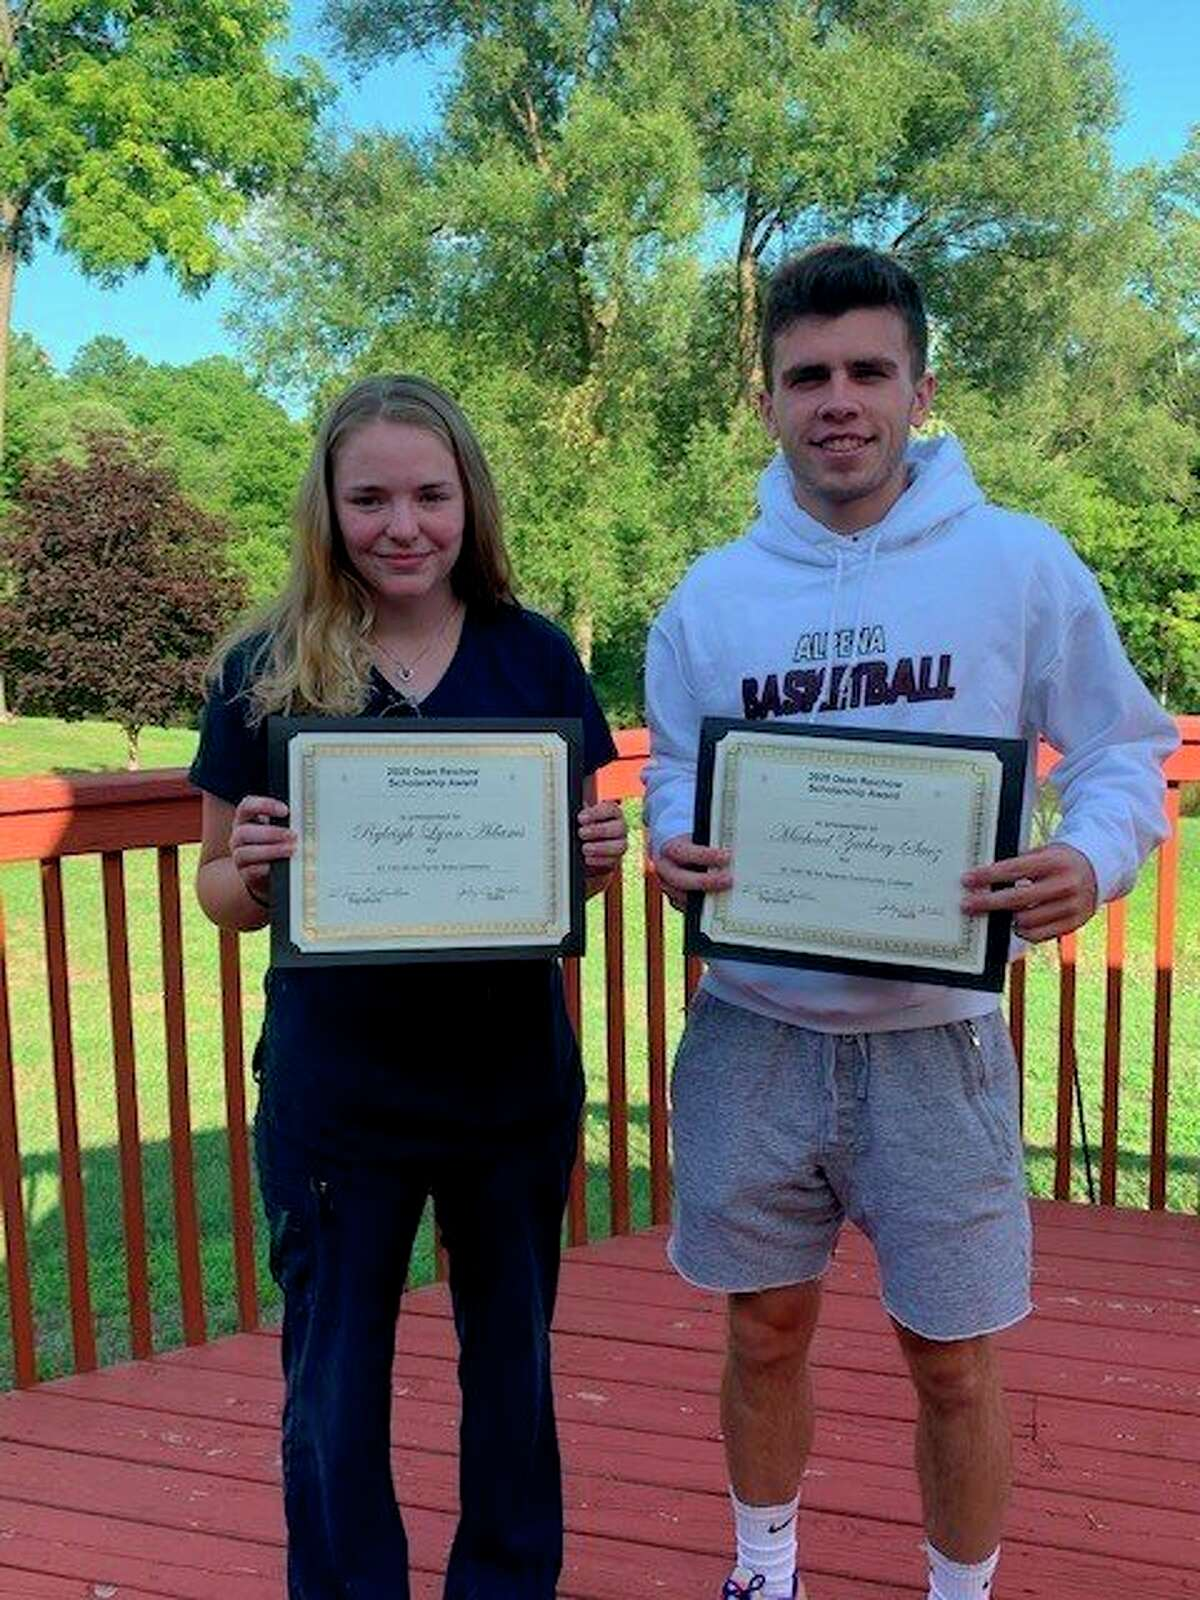 Ryleigh Adams (left) andMichael Zachery Saez each received an $1,100 Dean Riechow Scholarship Award from the Reed City Moose Lodge 705. Adamswill be attending Ferris State University to study Pre-Veterinarian.Saez will be attending Alpena Community College to study Utility Technology. (Submitted photo)